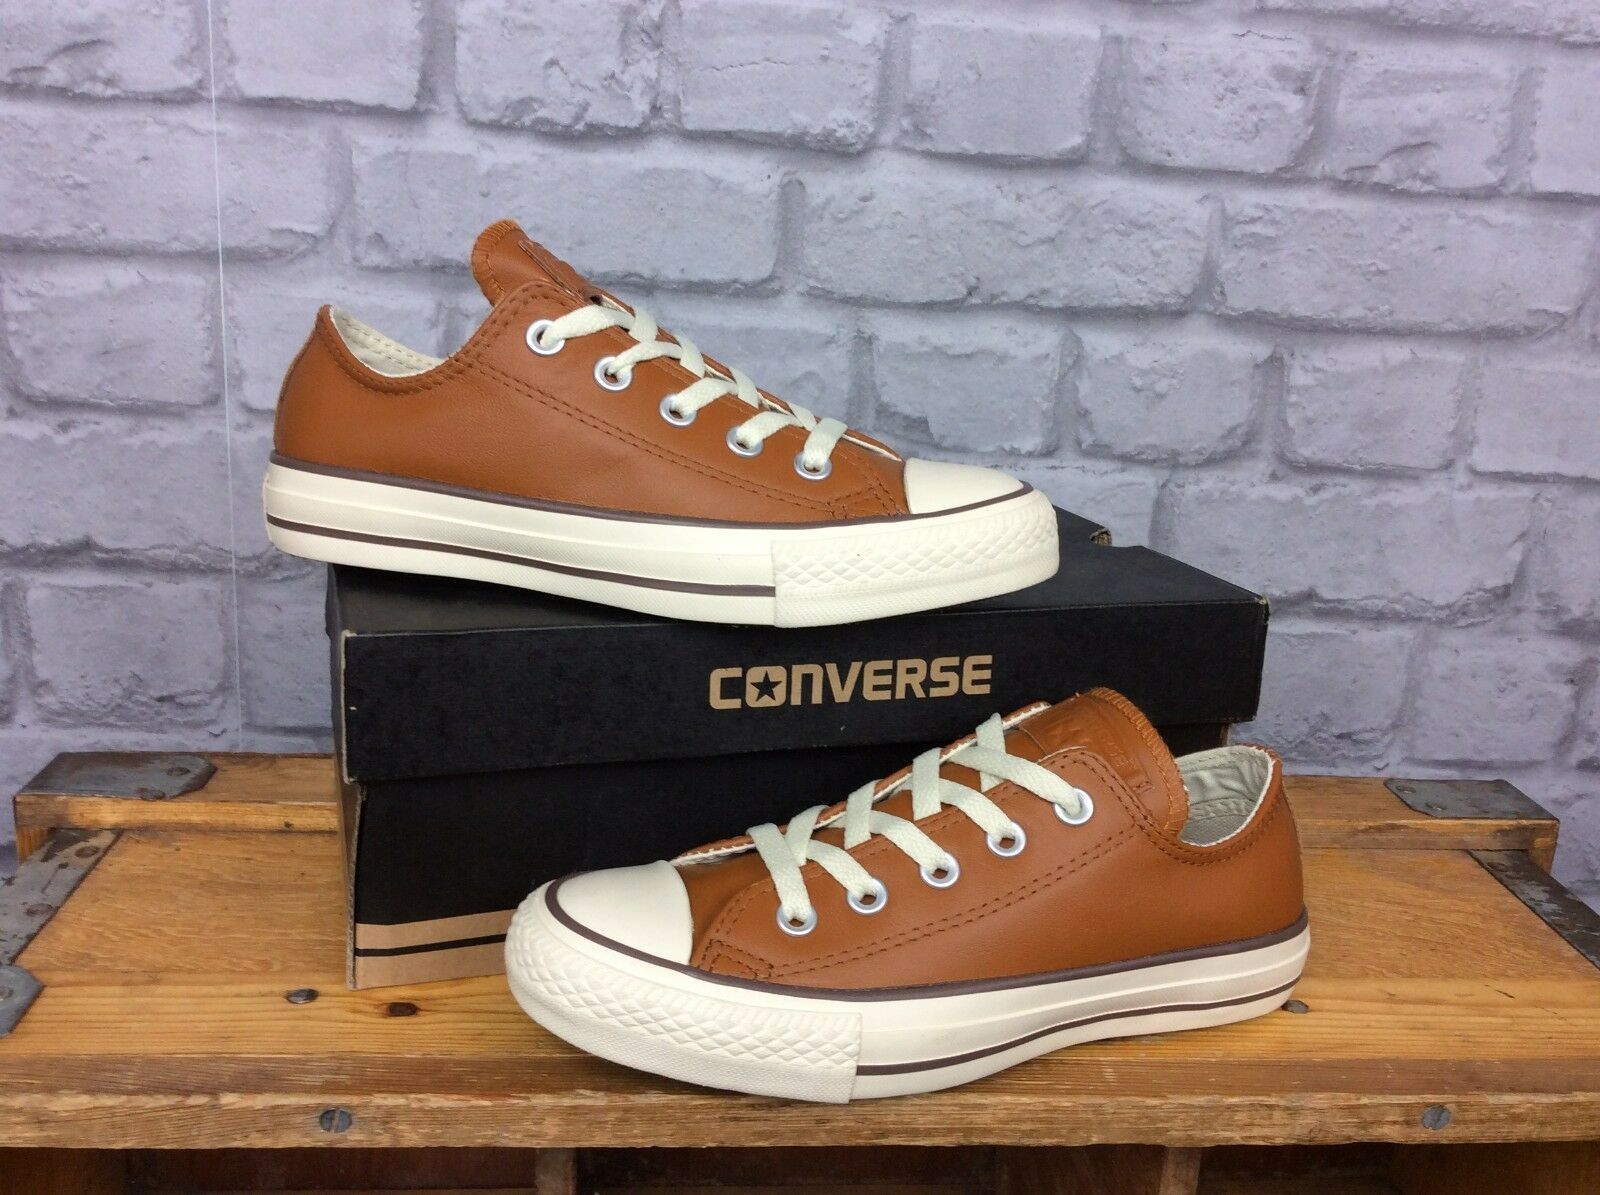 CONVERSE LADIES UK 3 EU 35 ALL STAR OX III TAN LEATHER TRAINERS